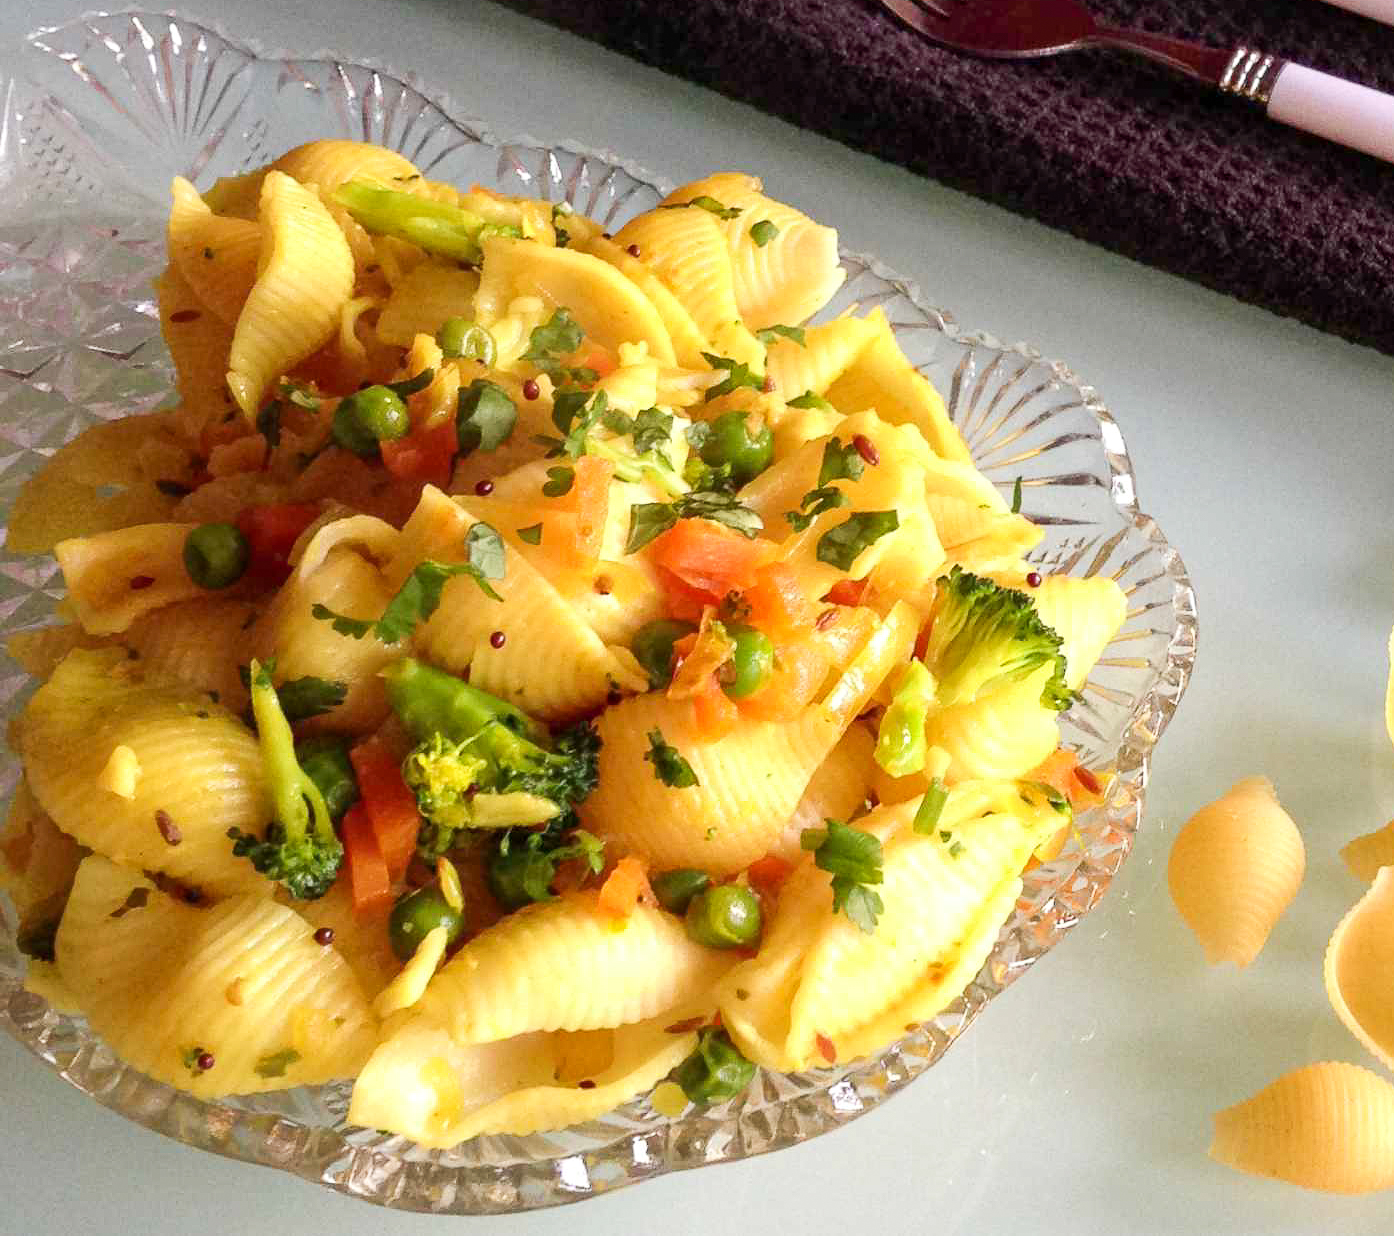 Desi style masala pasta recipe by archanas kitchen desi style masala pasta recipe indian style pasta forumfinder Images